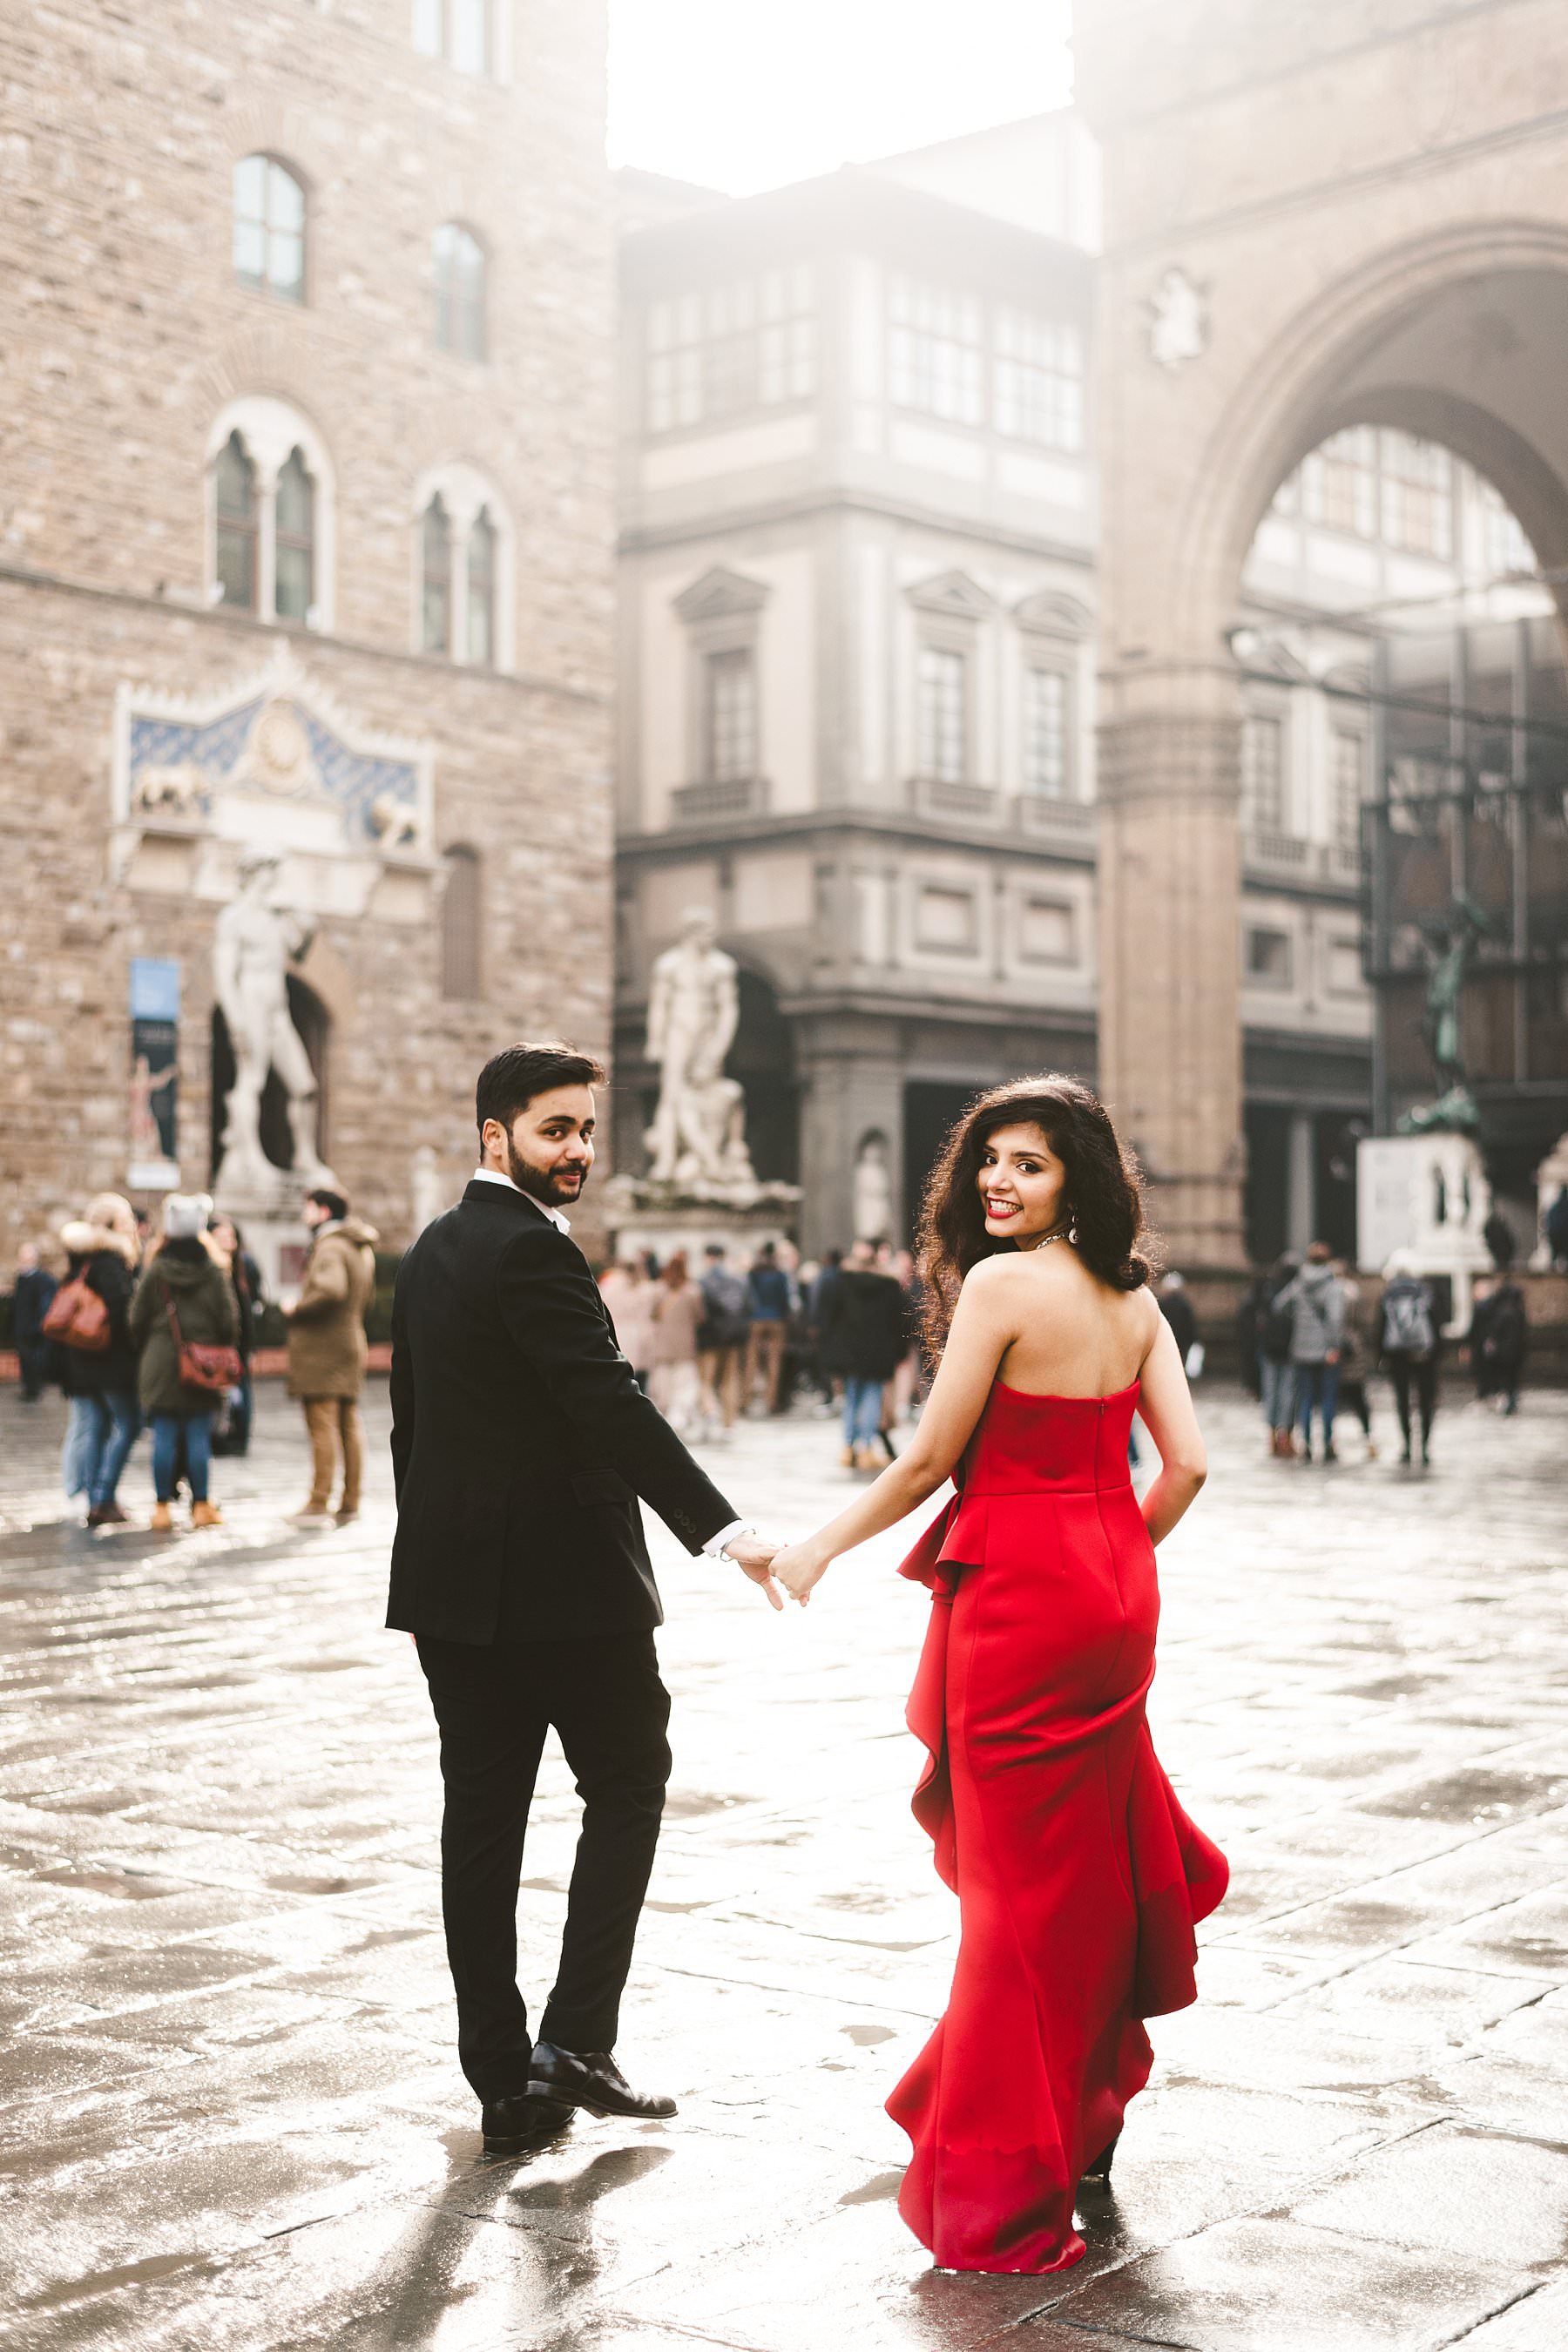 The magic of winter engagement photos. If Florence in winter wasn't perfect itself as a destination engagement setting, Pryia definitely contributed to making it even more fascinating thanks to the stunning red dress she wore during the shooting. She lit up that foggy day and the eyes of every passer-by were on her. We started taking their destination engagement photos at the Duomo, with its white-and-green marble geometry as a background, then walked all over the heart of the city. Piazza della Signoria, Uffizi Gallery, Ponte Vecchio, Via de' Tornabuoni: Pryia and Sid floated around, unconcerned by the cold temperature and focused only on their love